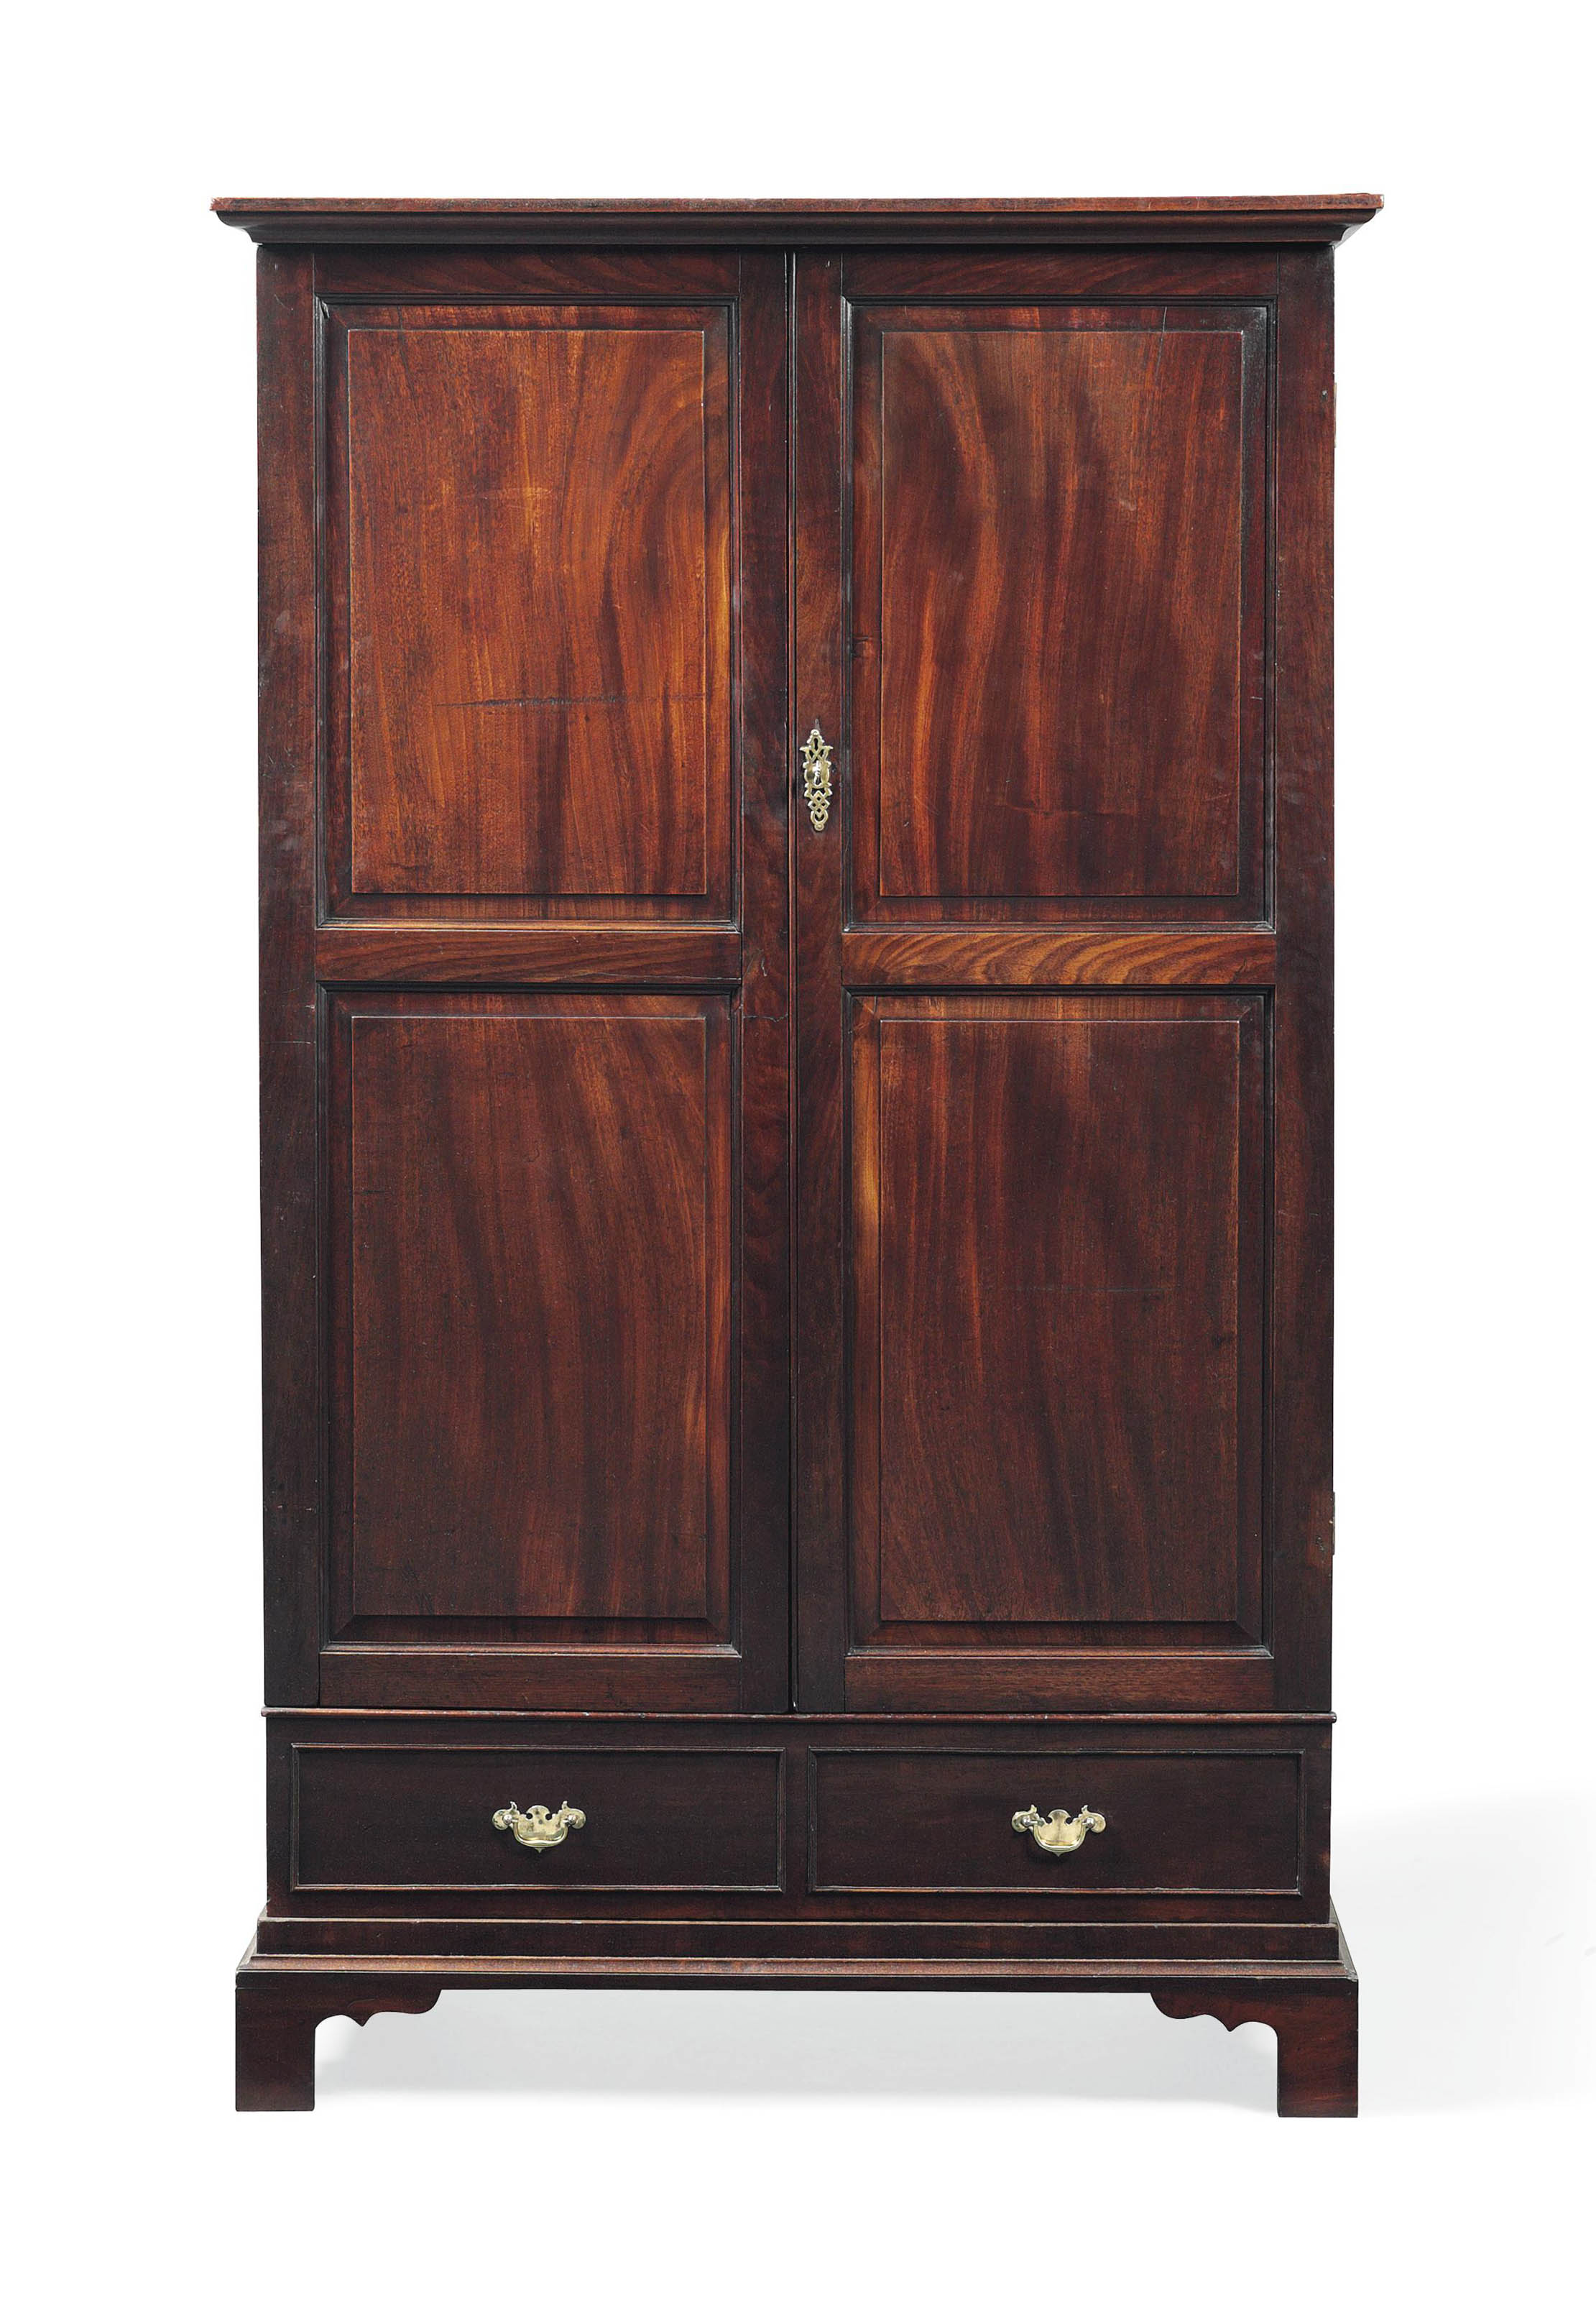 AN EARLY GEORGE III MAHOGANY W